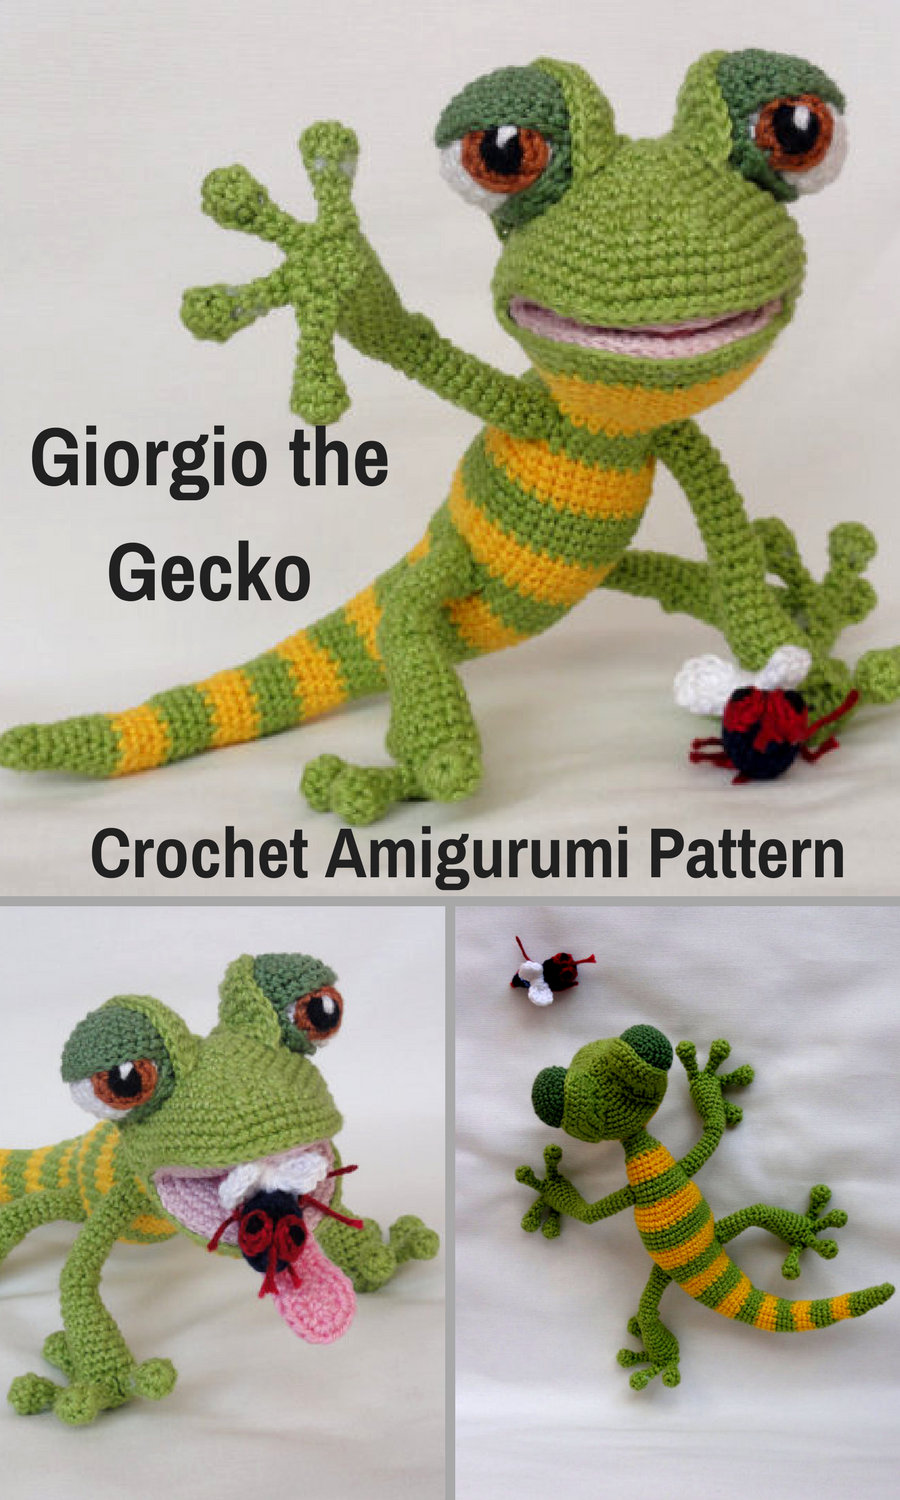 Giorgio the Gecko is a sweet crocheted amigurumi doll that would ...